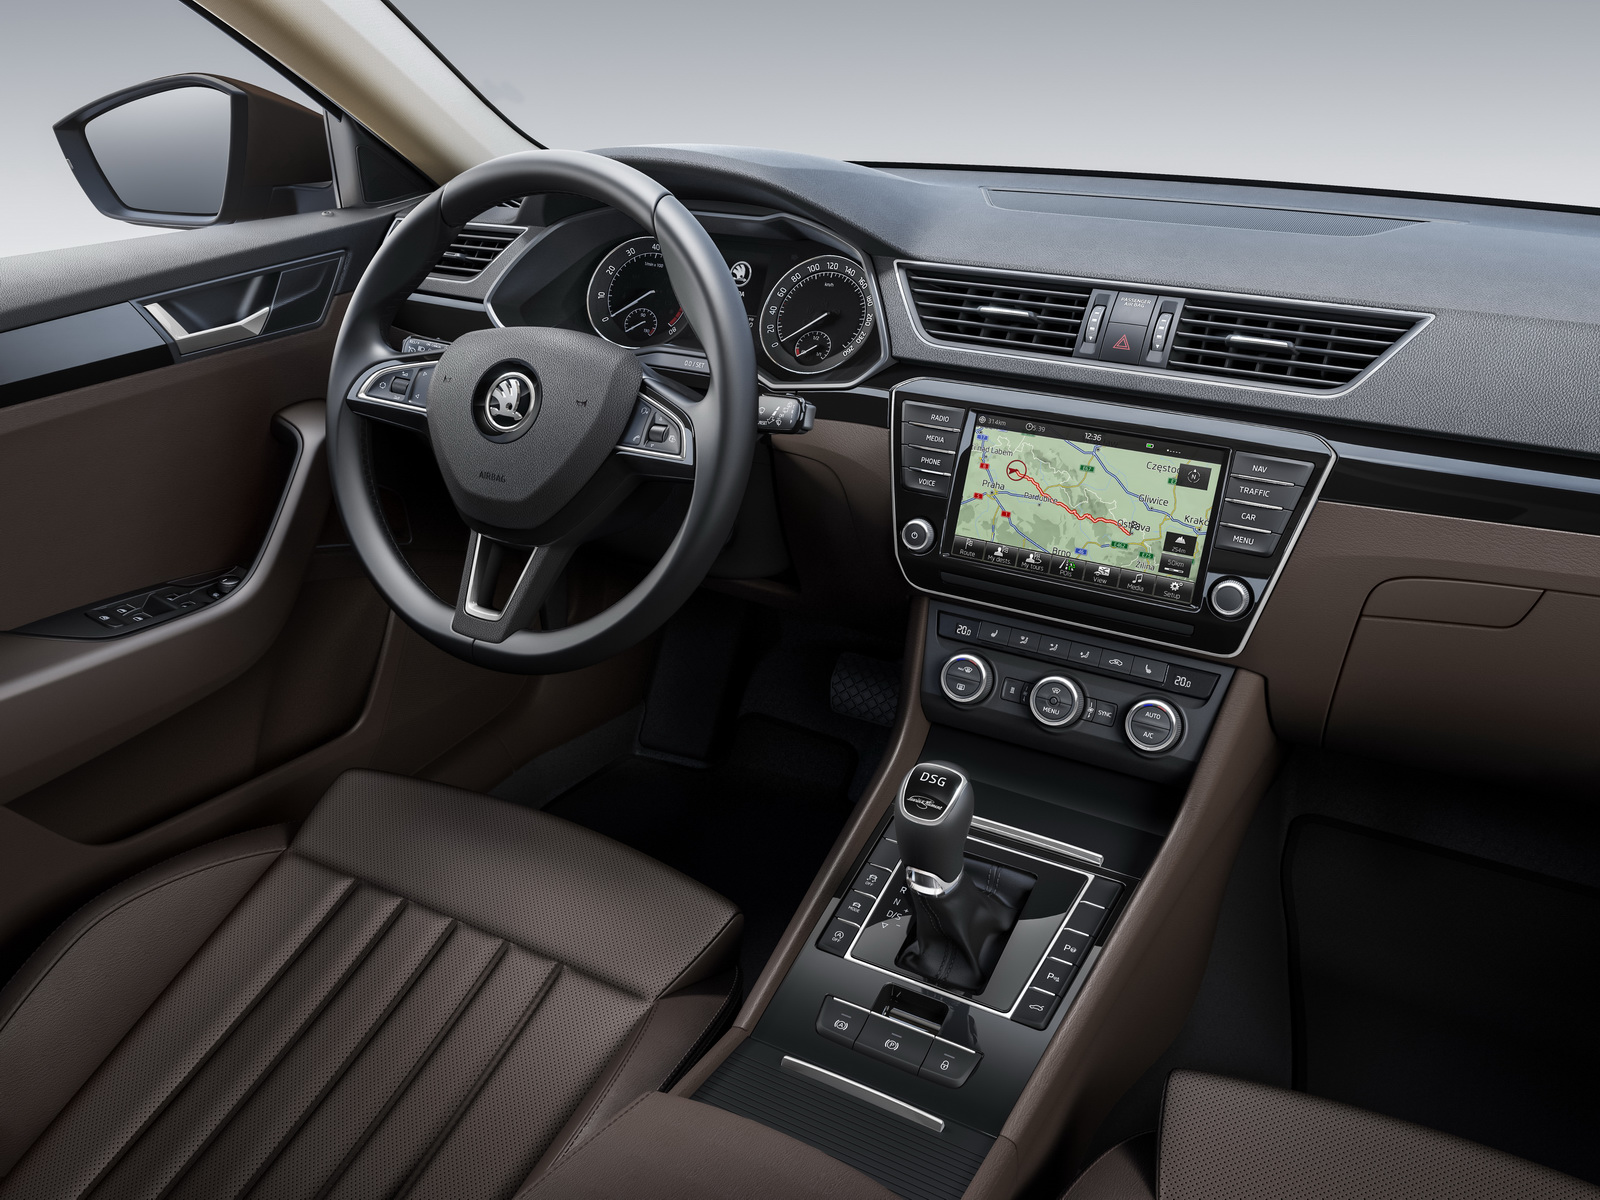 Skoda-Superb-interior-1.jpg